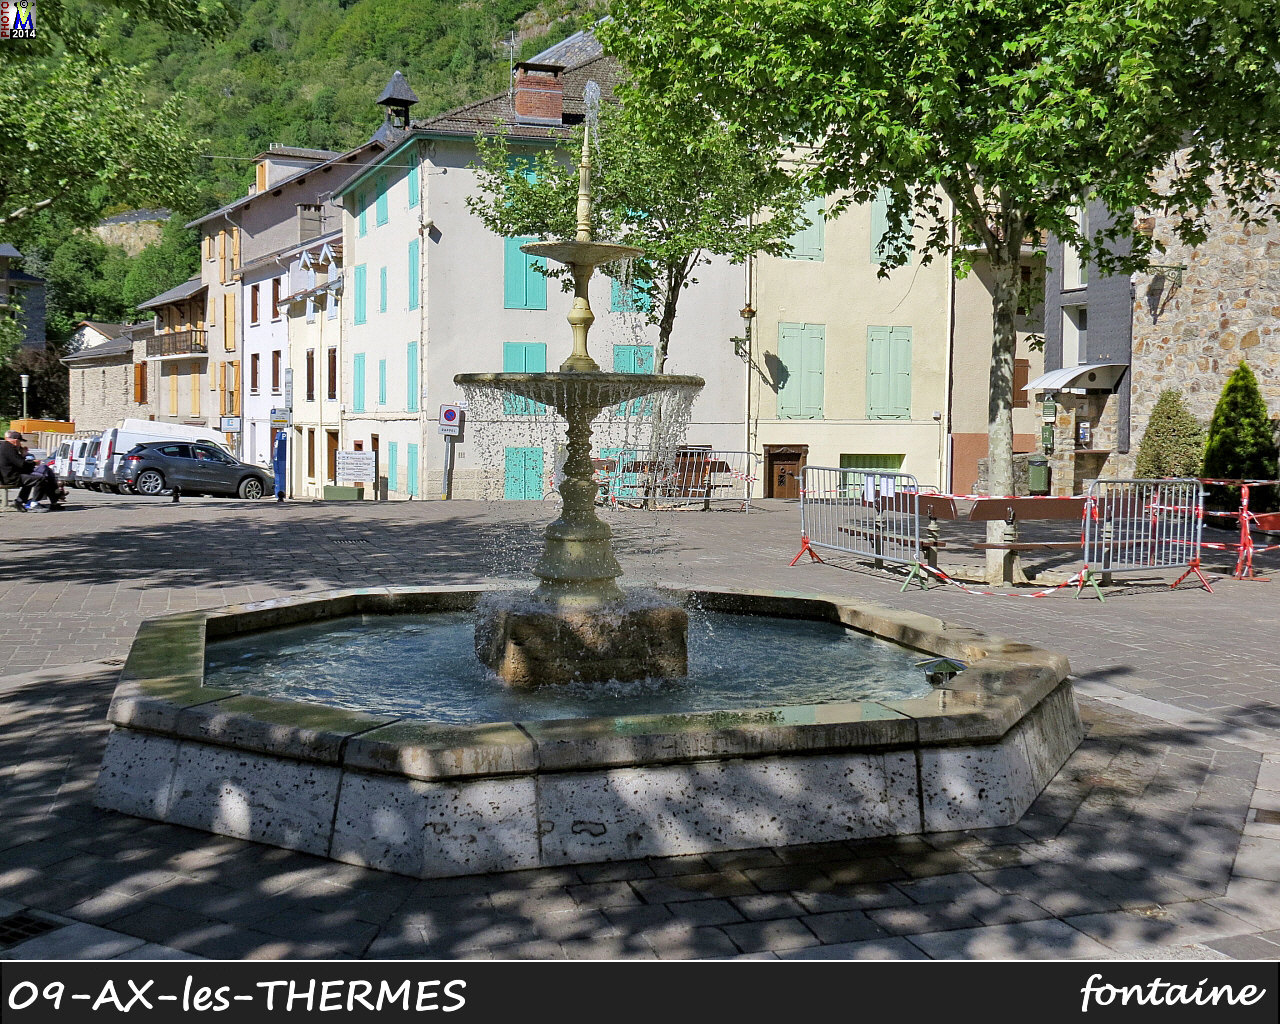 09AX-THERMES_fontaine_100.jpg